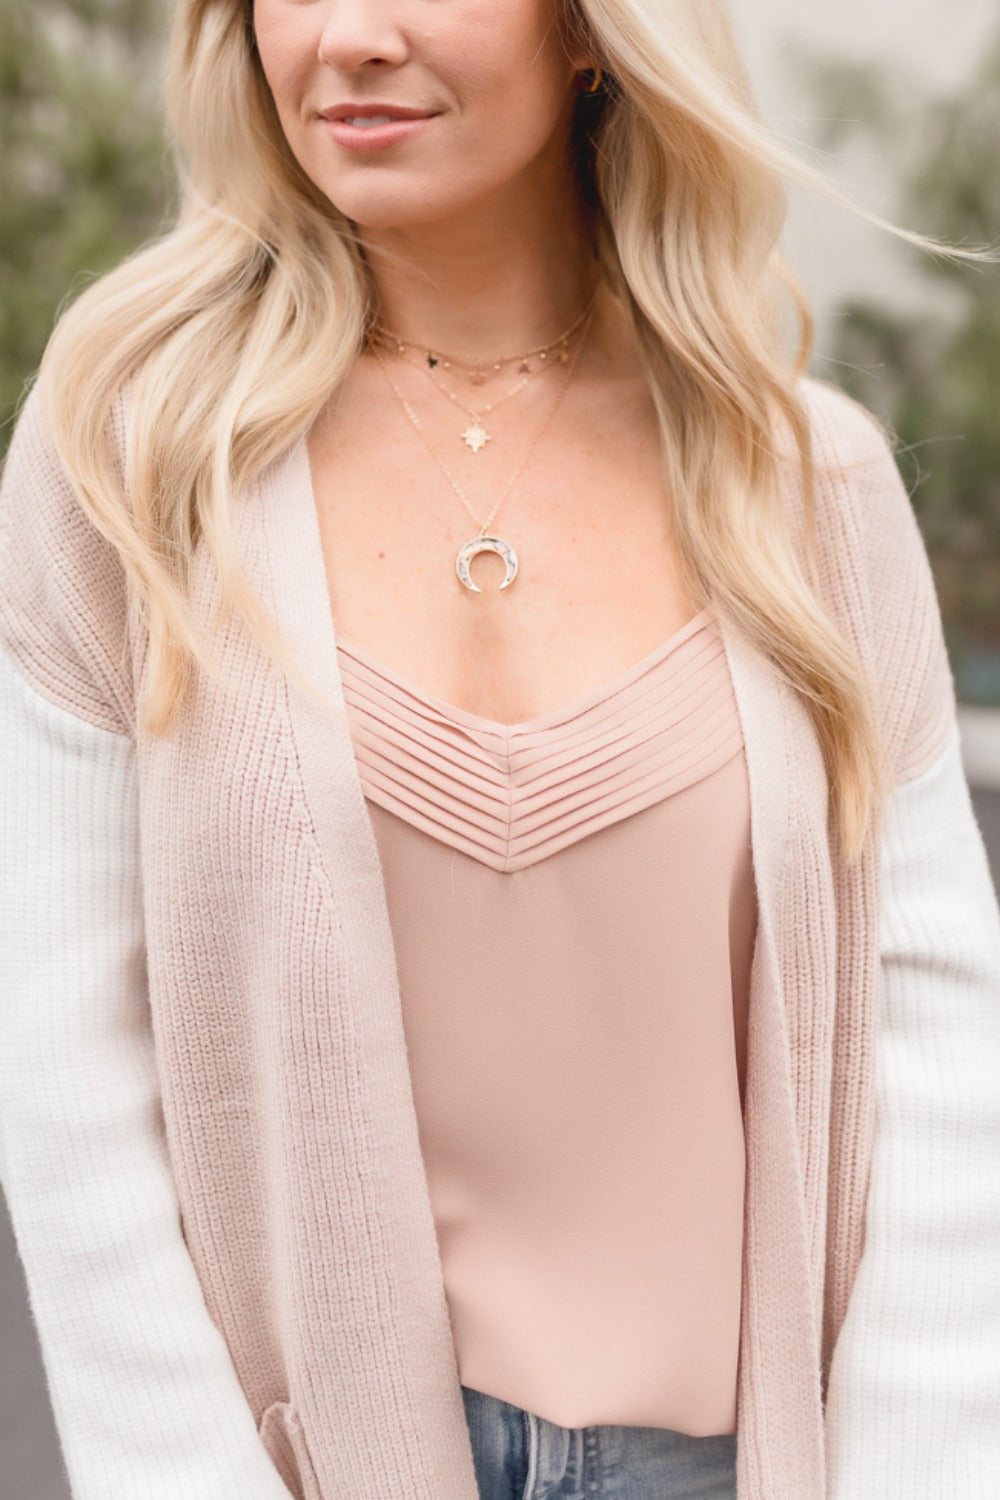 LEYTON MULTI-LAYER GOLD NECKLACE